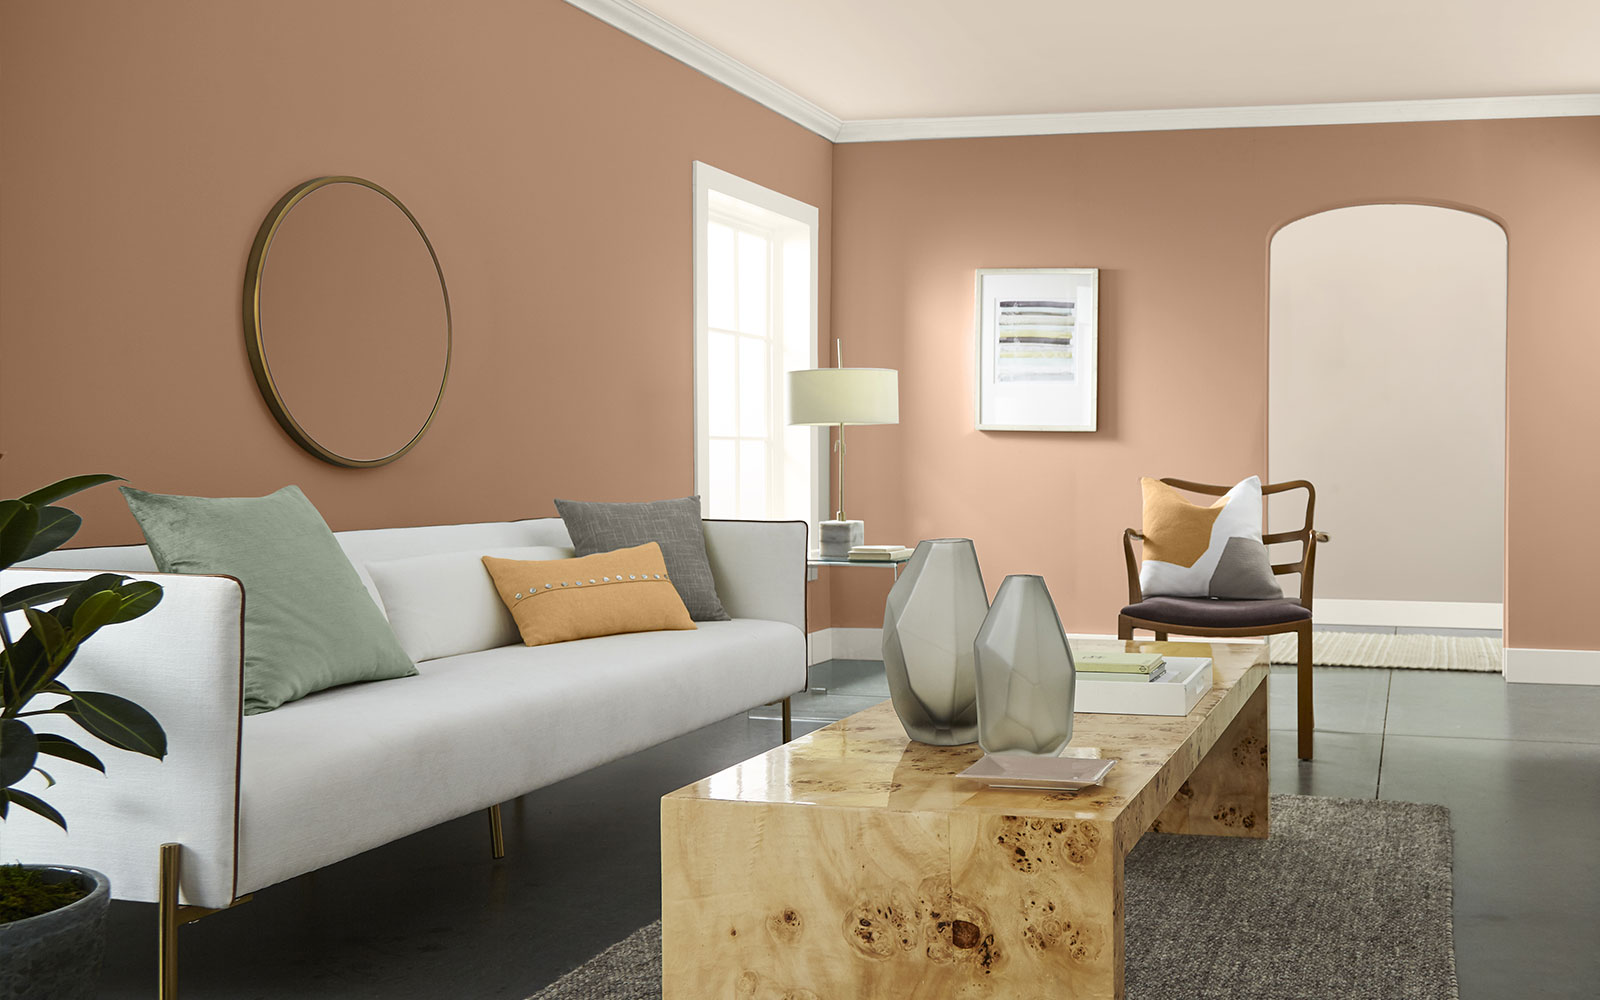 A living room image with four color swatches sitting beside it. The image displays the four colors: a light, but bright clean orange hue for a pillow  on the couch, a dusty orange hue is used on the wall, a creamy white hue is used for the trim, ceiling and couch, and a minty green is used for a pillow.